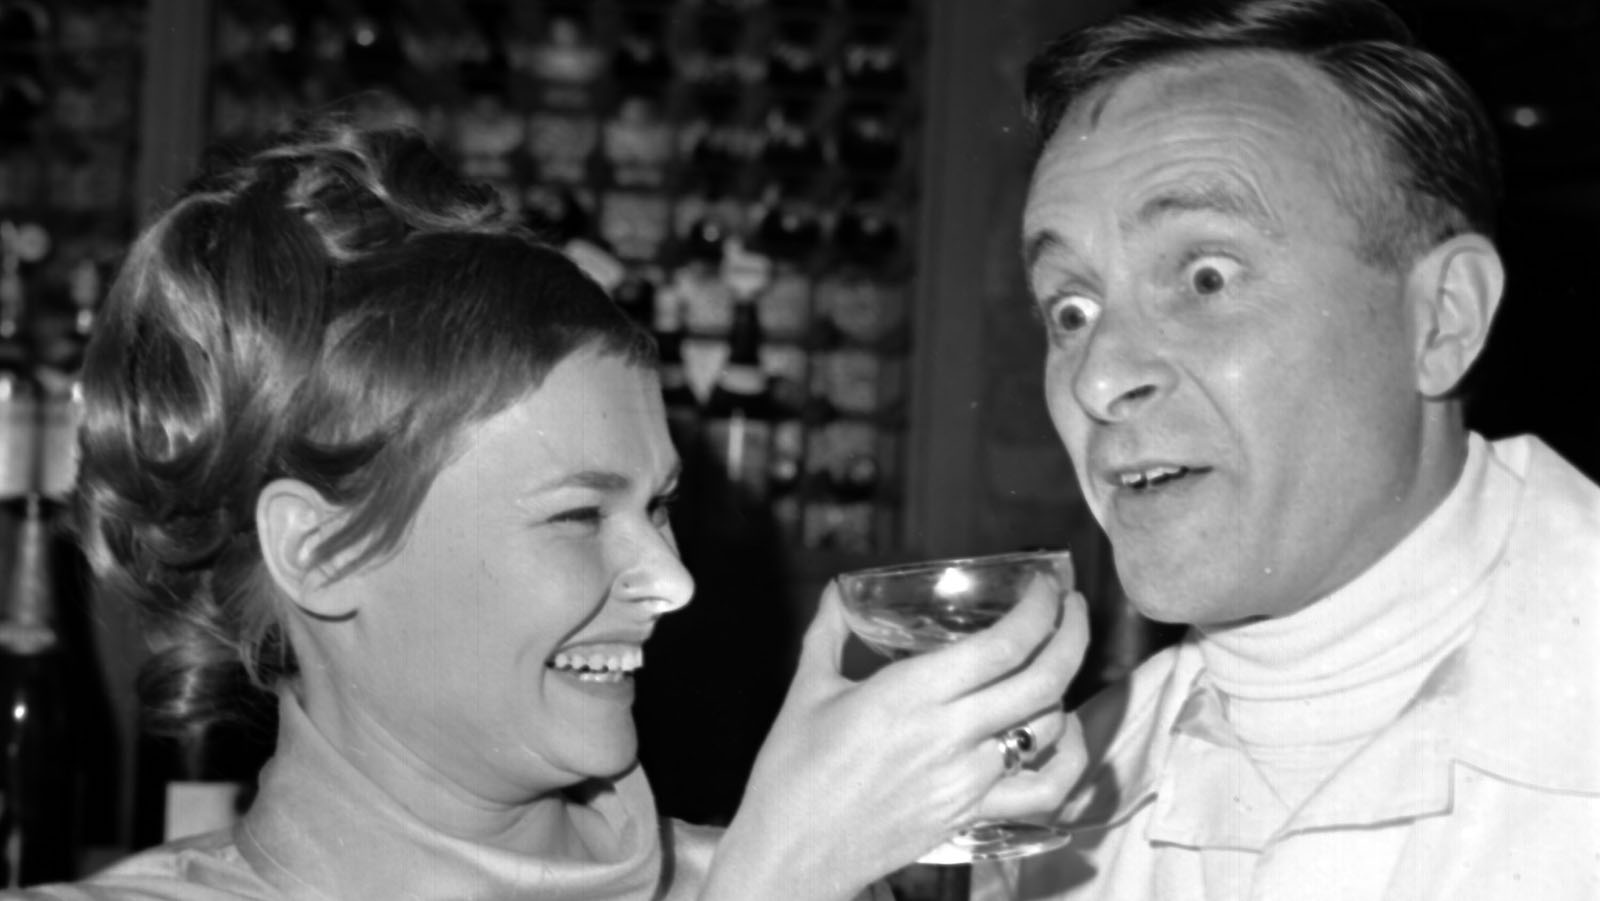 British actress Judi Dench, toasts British actor Alec McCowan,during a party held at the Mermaid Theatre, London, July 24, 1968. (AP Photo/Staff/Dear).